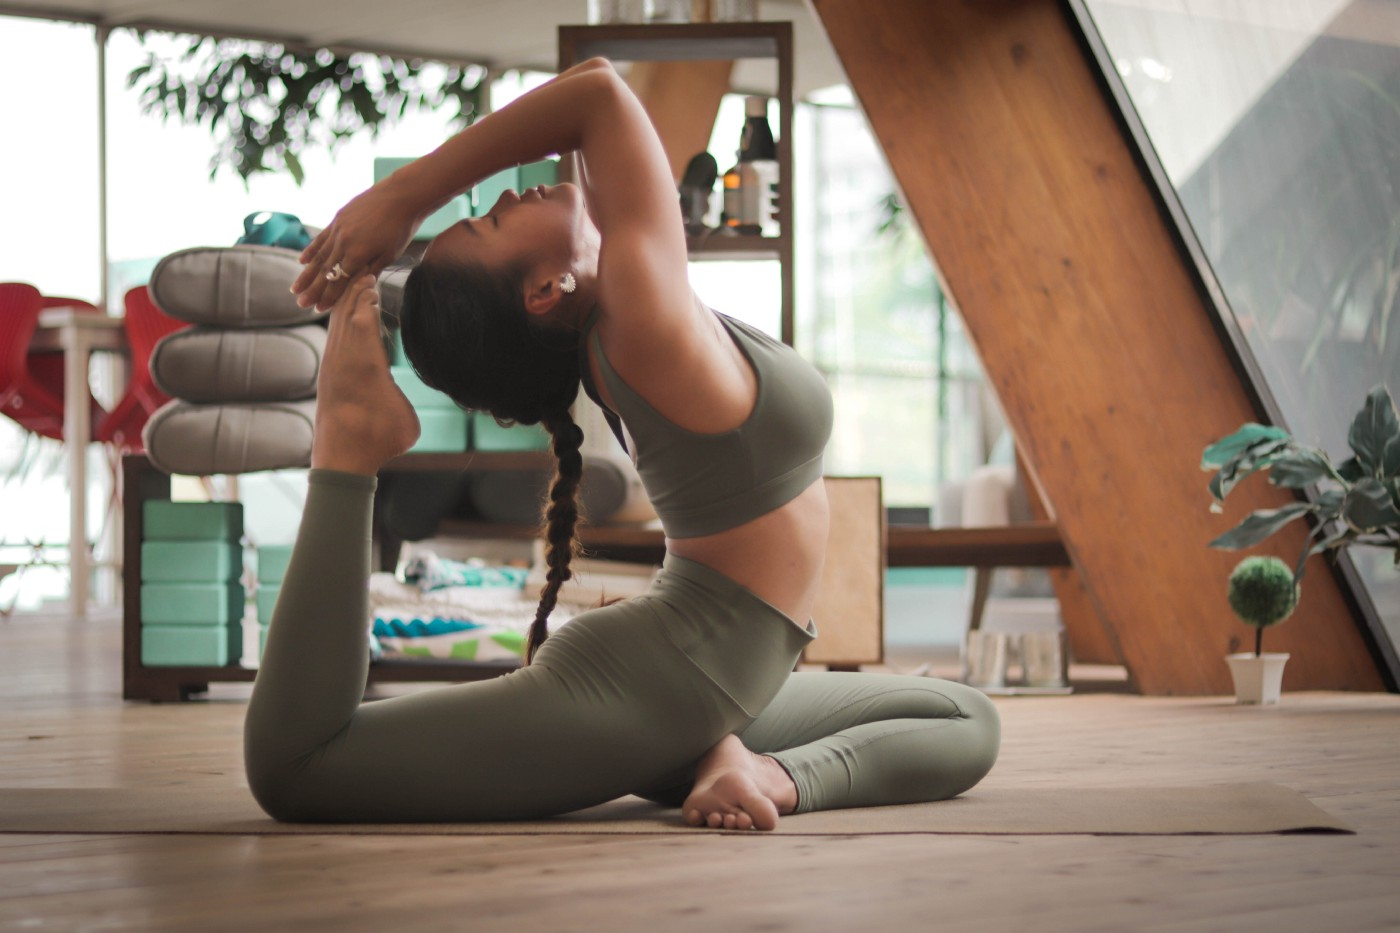 Girl in a yoga pose